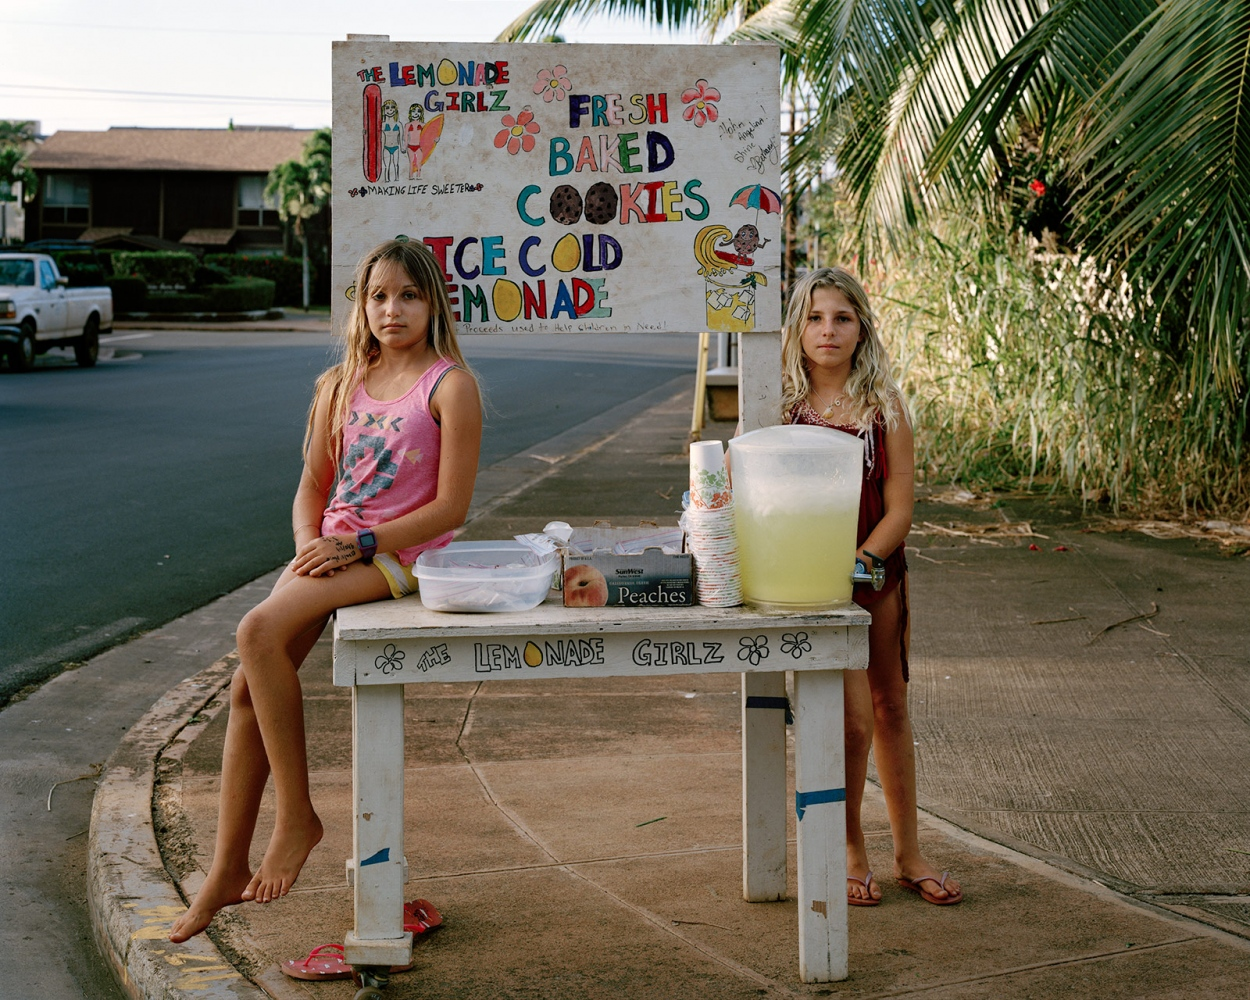 Lemonade Stand, Hawaii 2014